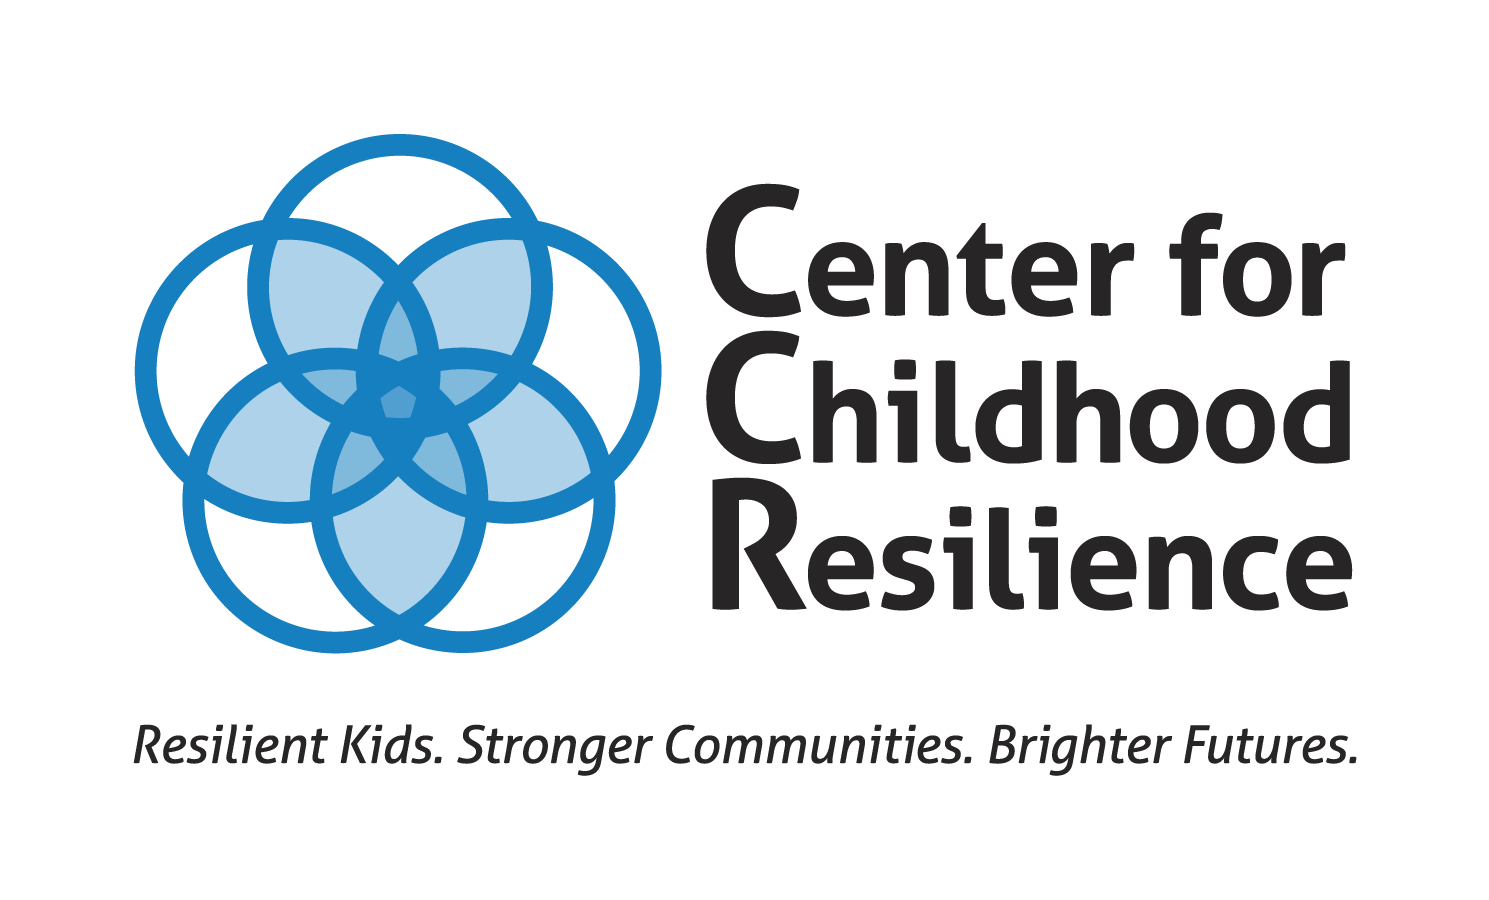 Center for Childhood Resilience